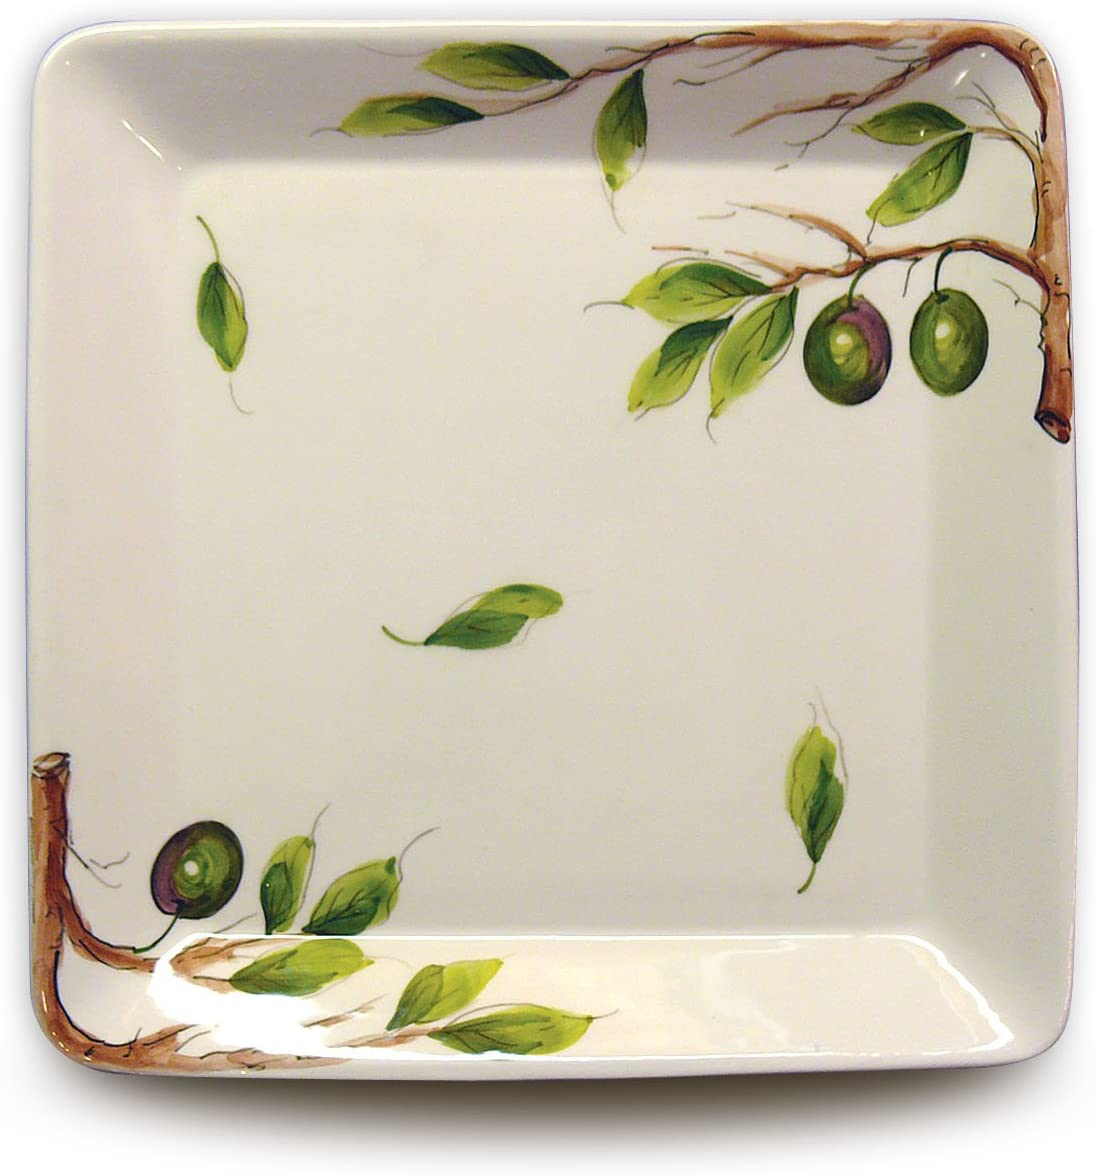 Hand Louisville-Jefferson County Mall Painted Square Platter From with Excellence Italy Olives